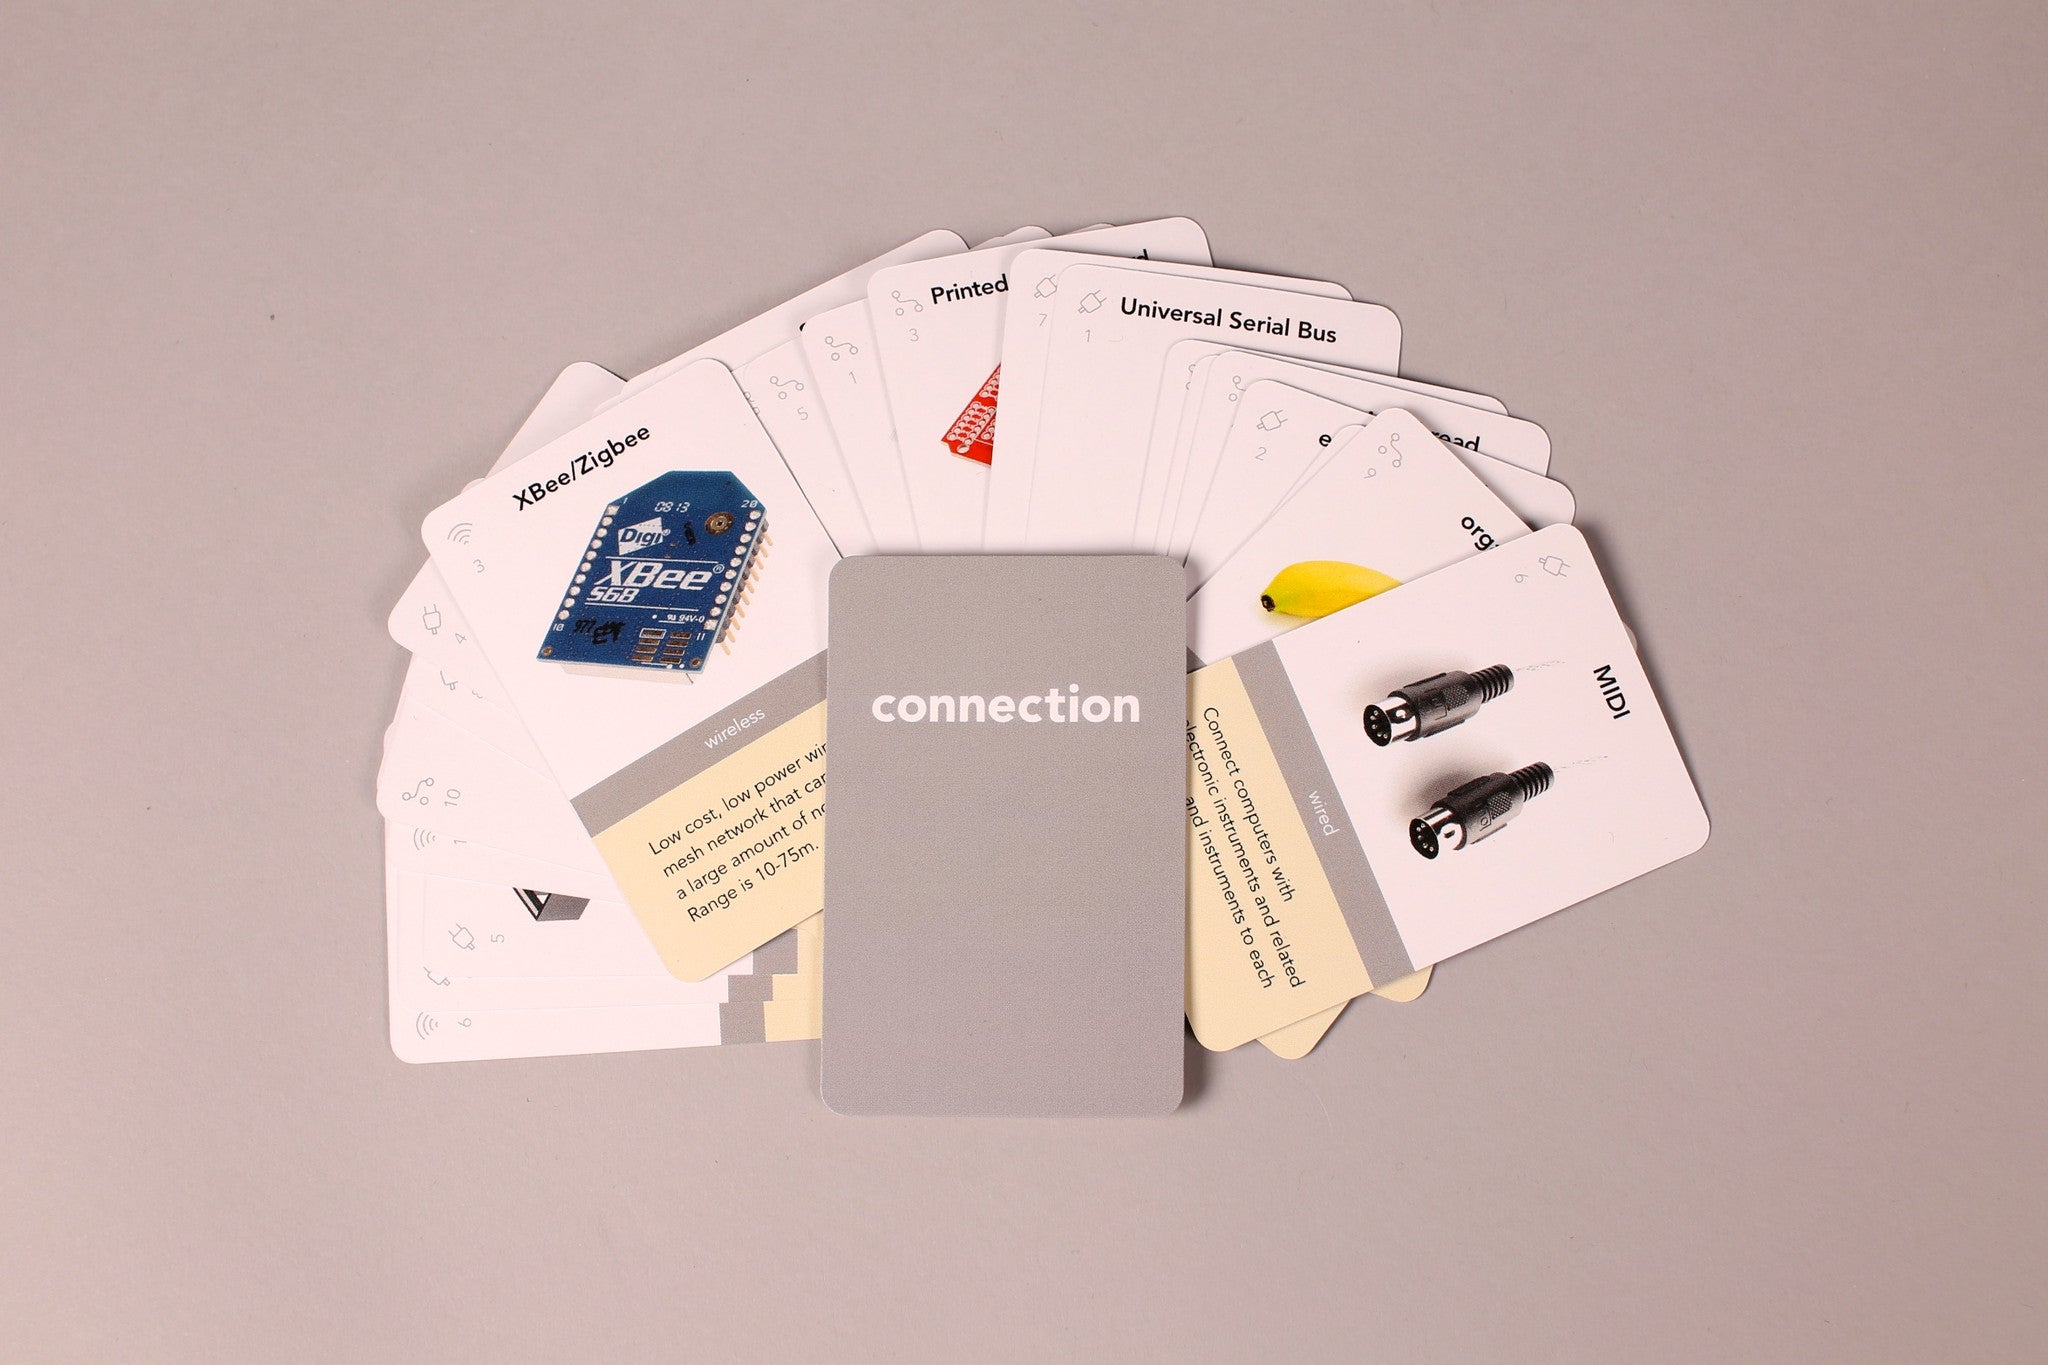 Connection cards (26 cards)